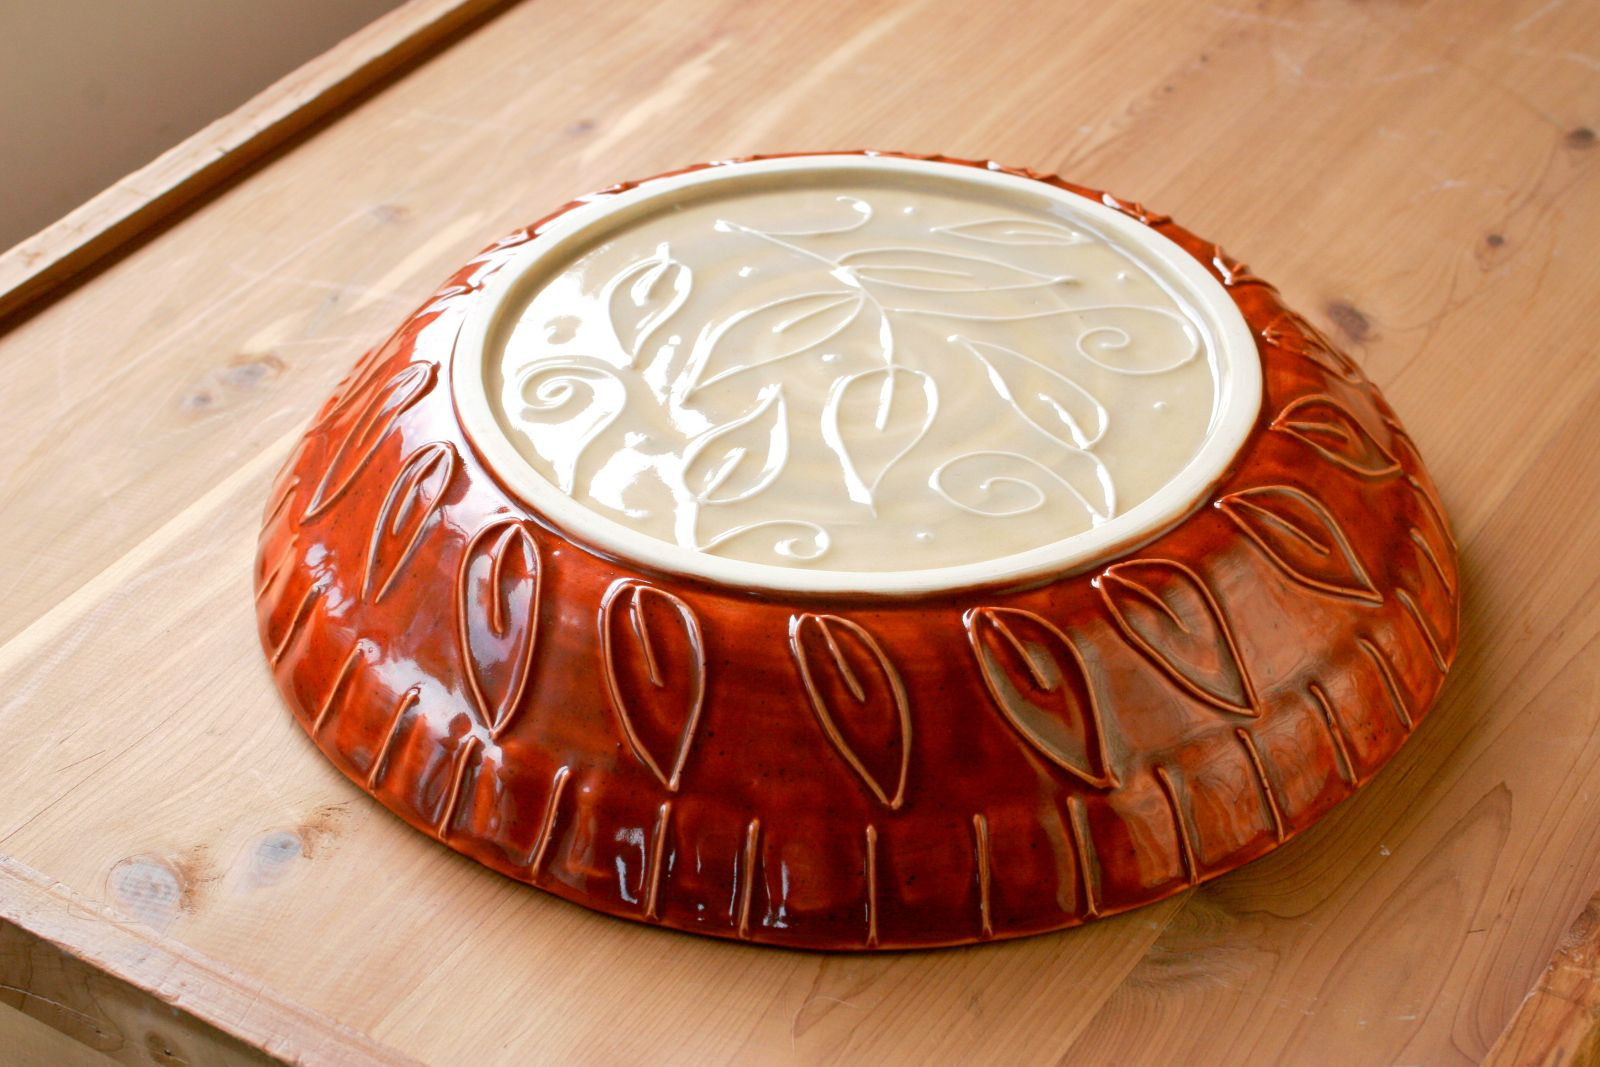 Custom Wedding Pie Plate, exterior with slip trailed leaves